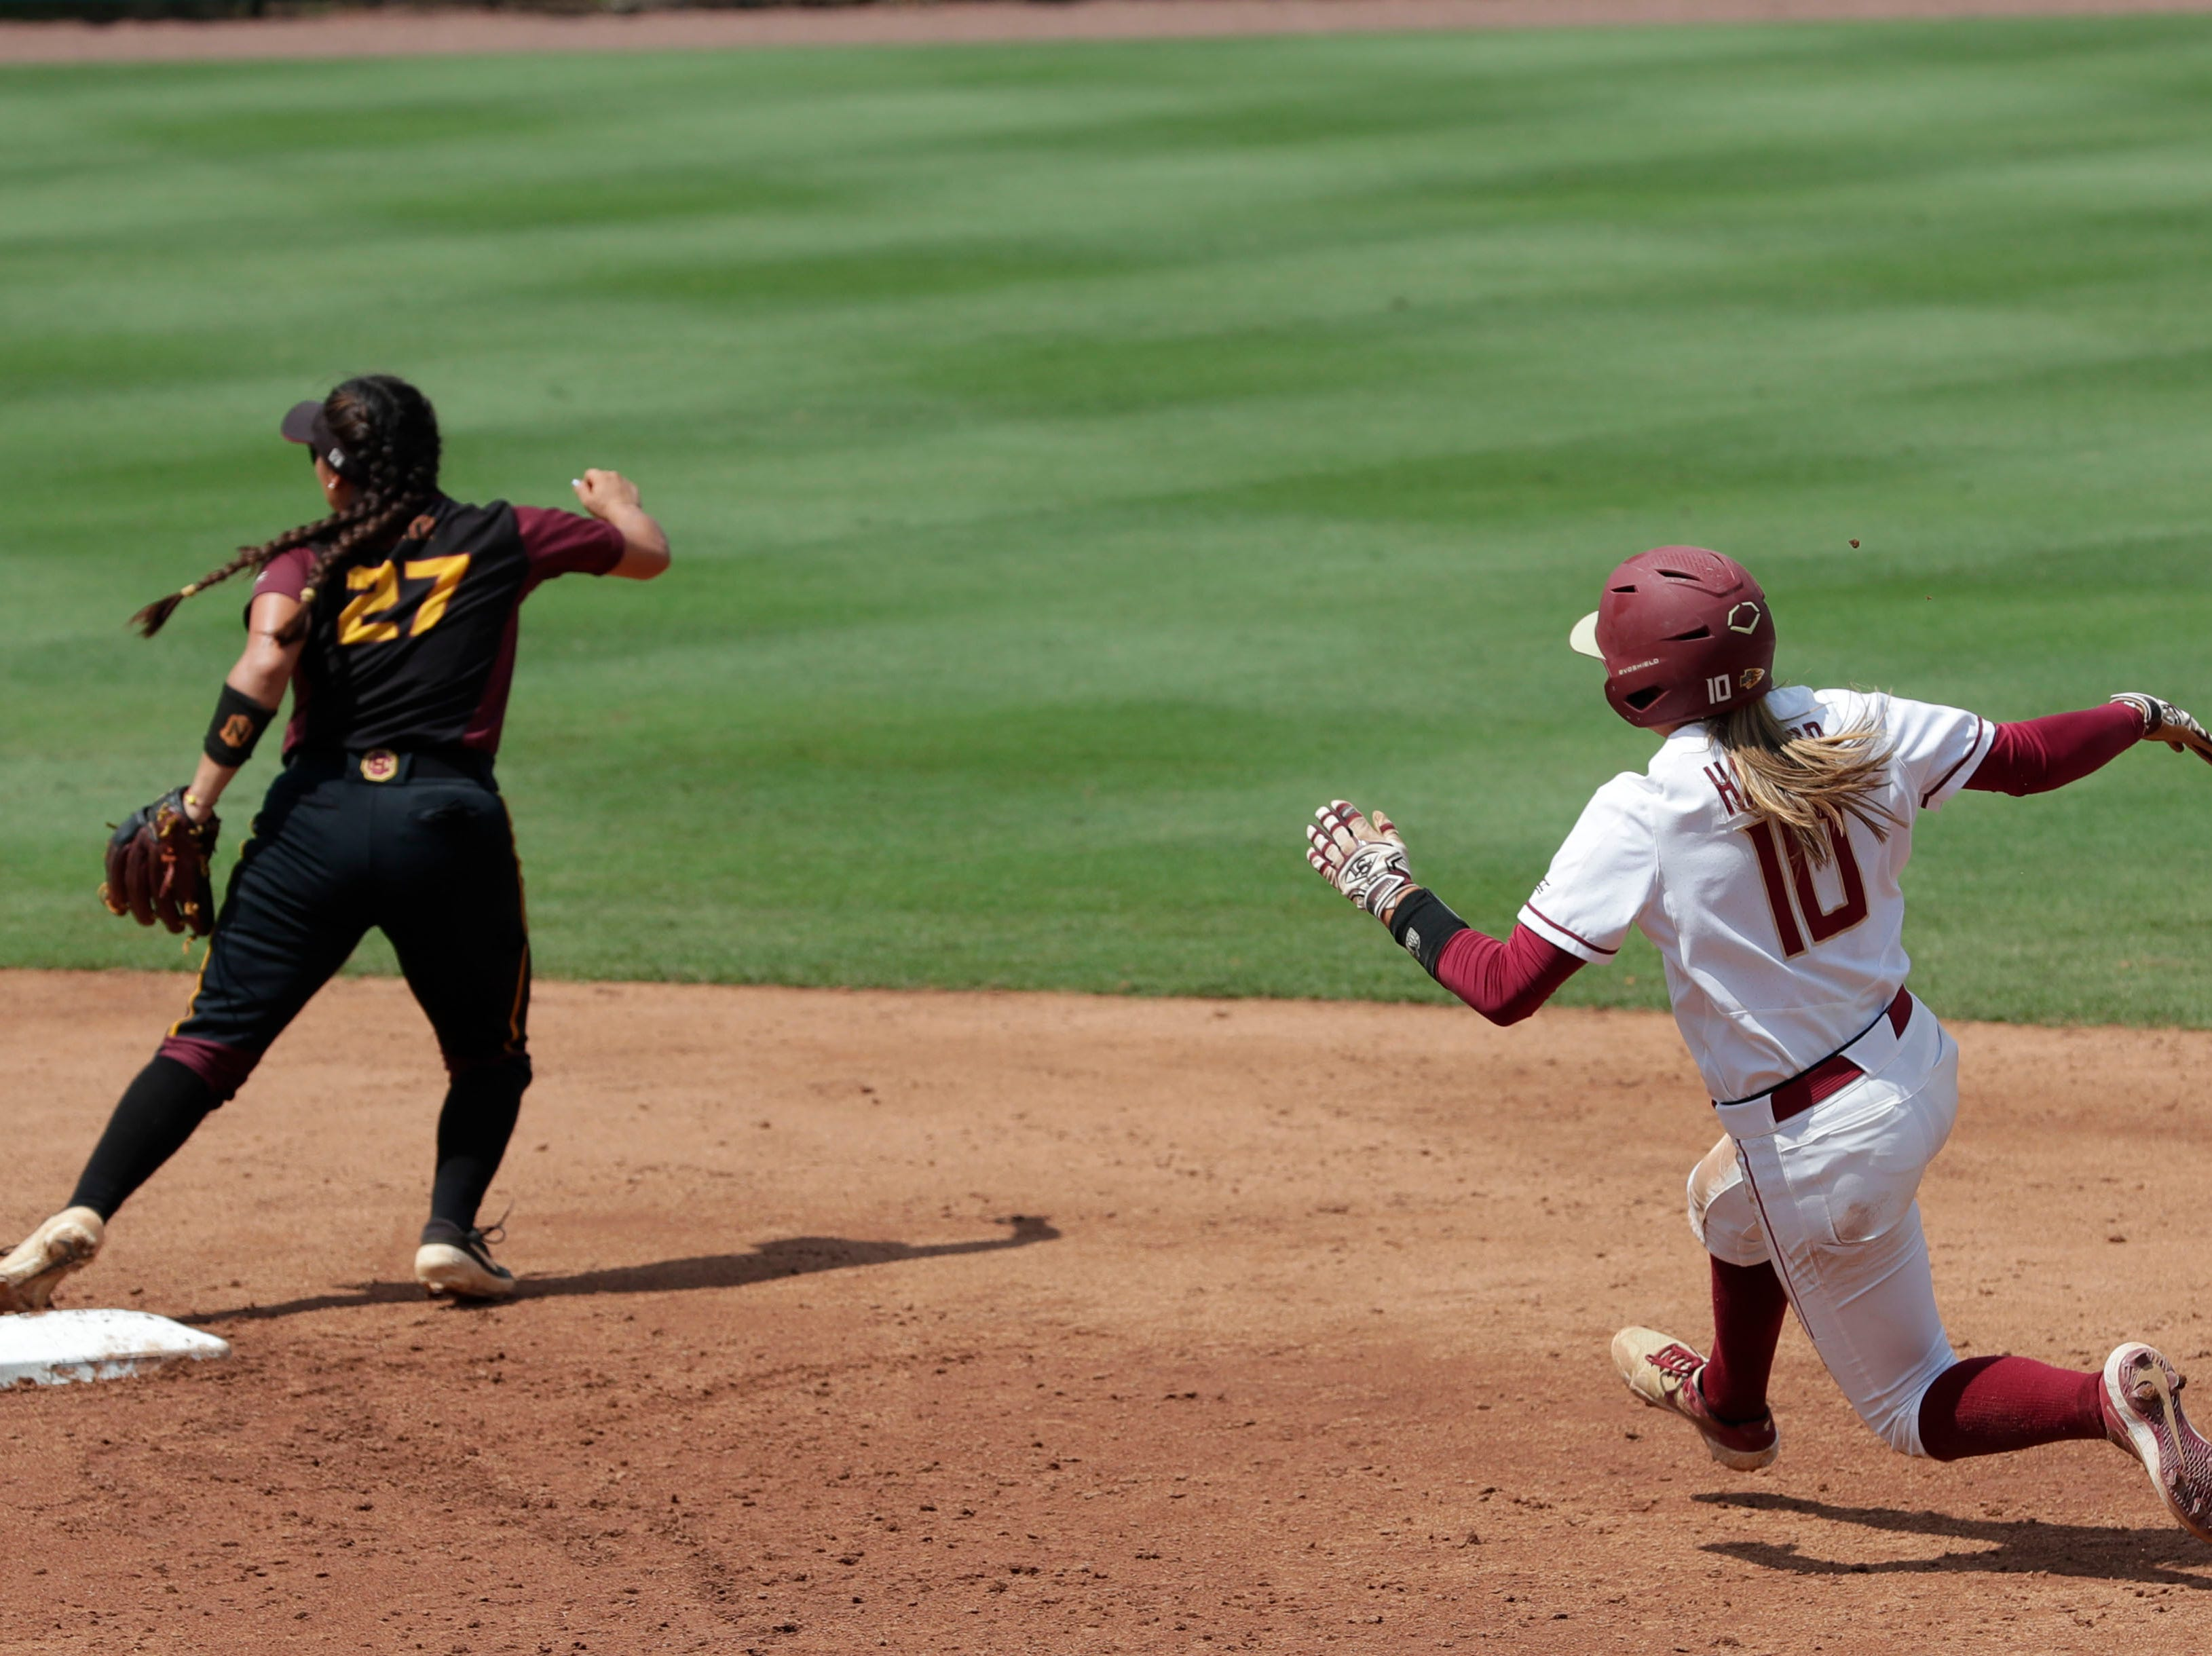 Florida State Seminoles infielder Cali Harrod (10) slides into second base. The Florida State Seminoles host the Bethune-Cookman Wildcats in the first round of the NCAA Regional Playoffs Friday, May 17, 2019.